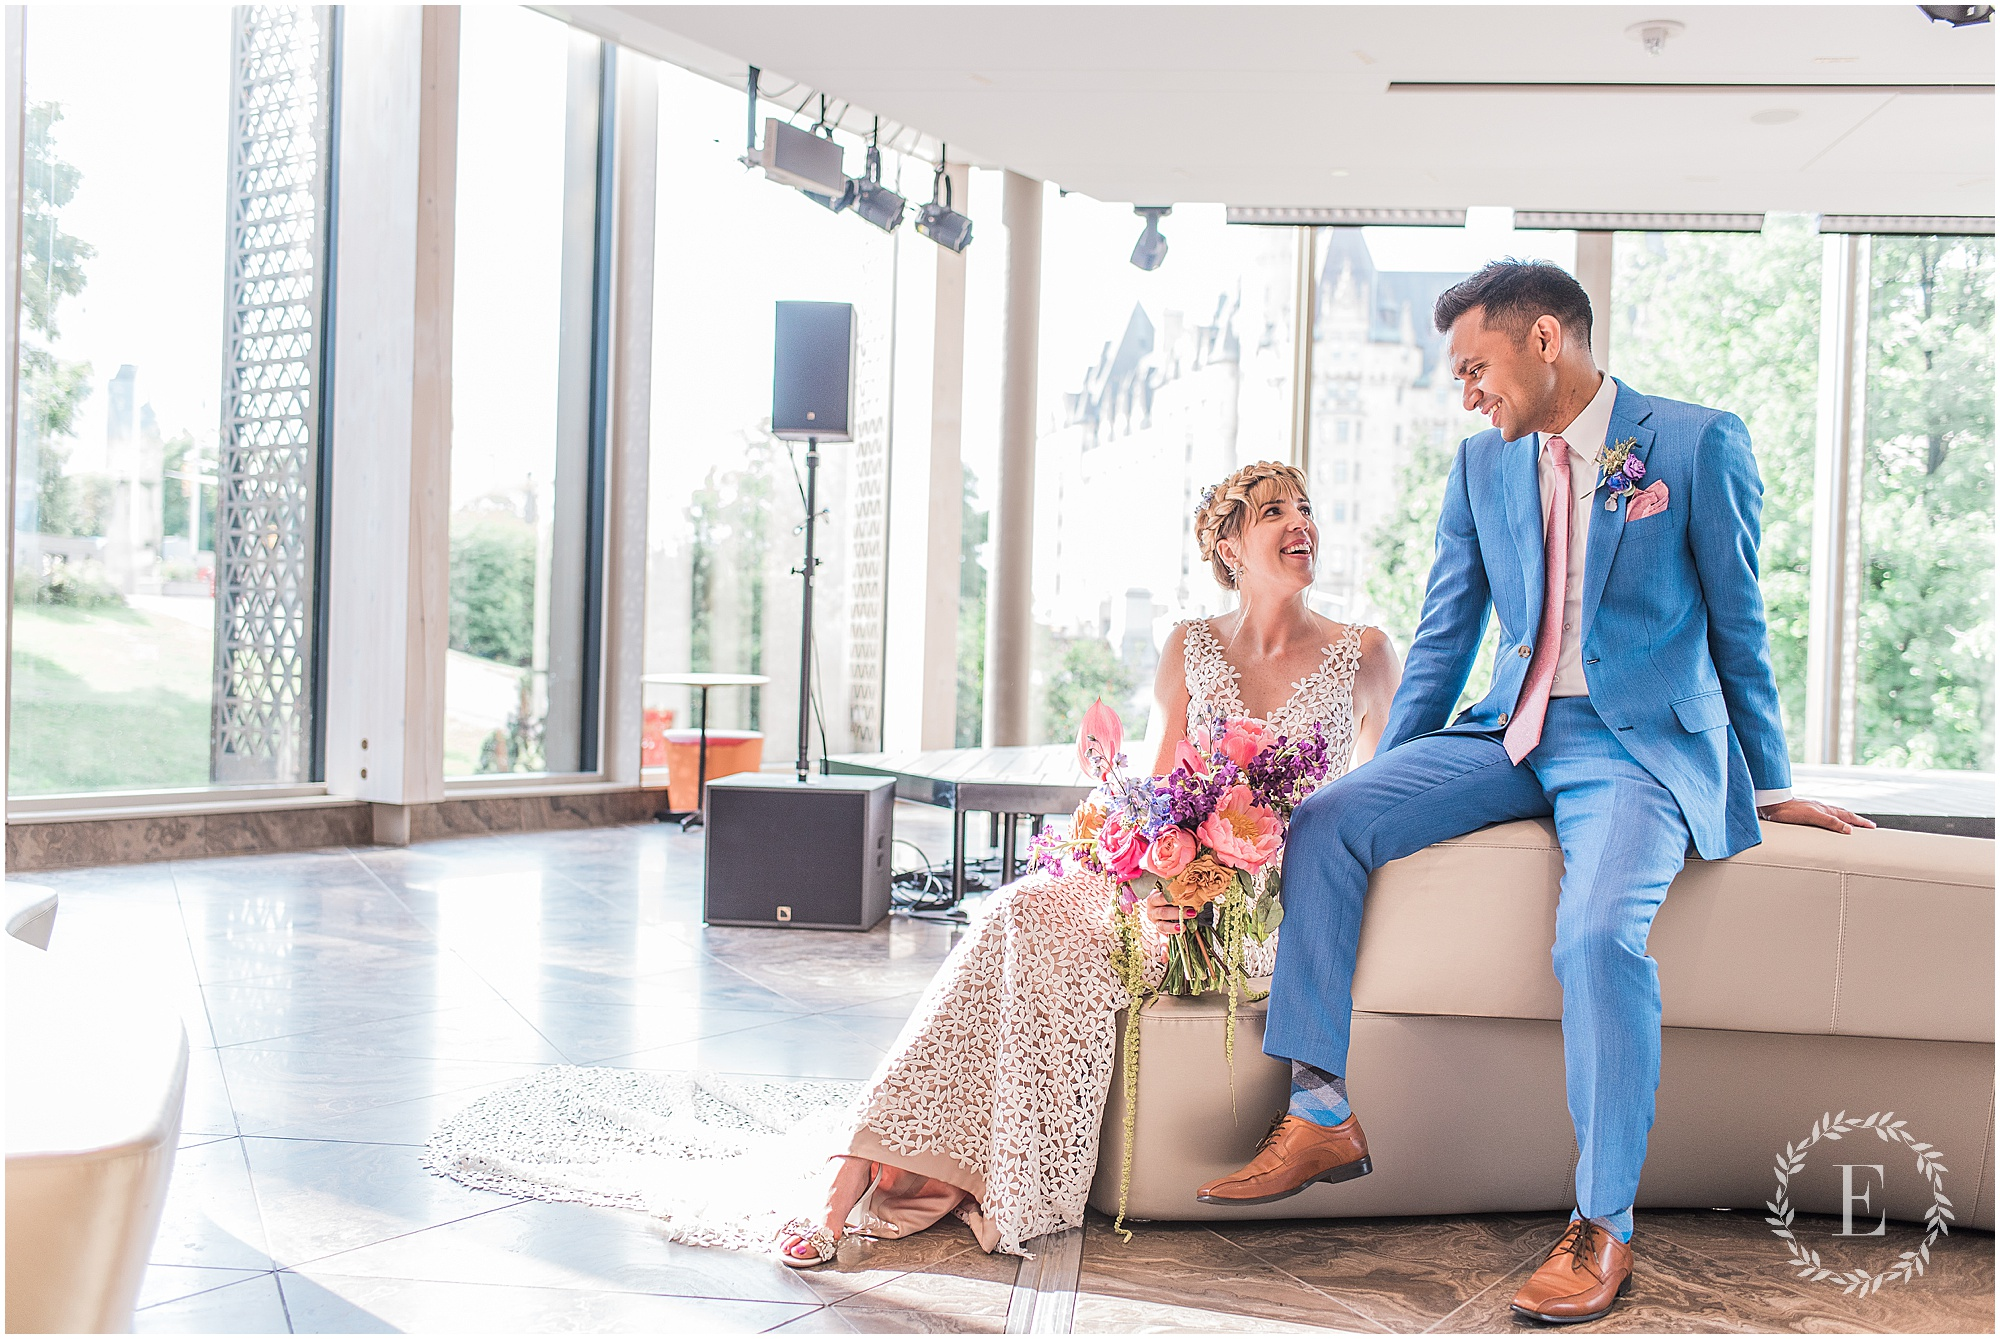 724 Cait and Saaqib Jabberwocky Ottawa Wedding 2019 - Photography by Emma.jpg